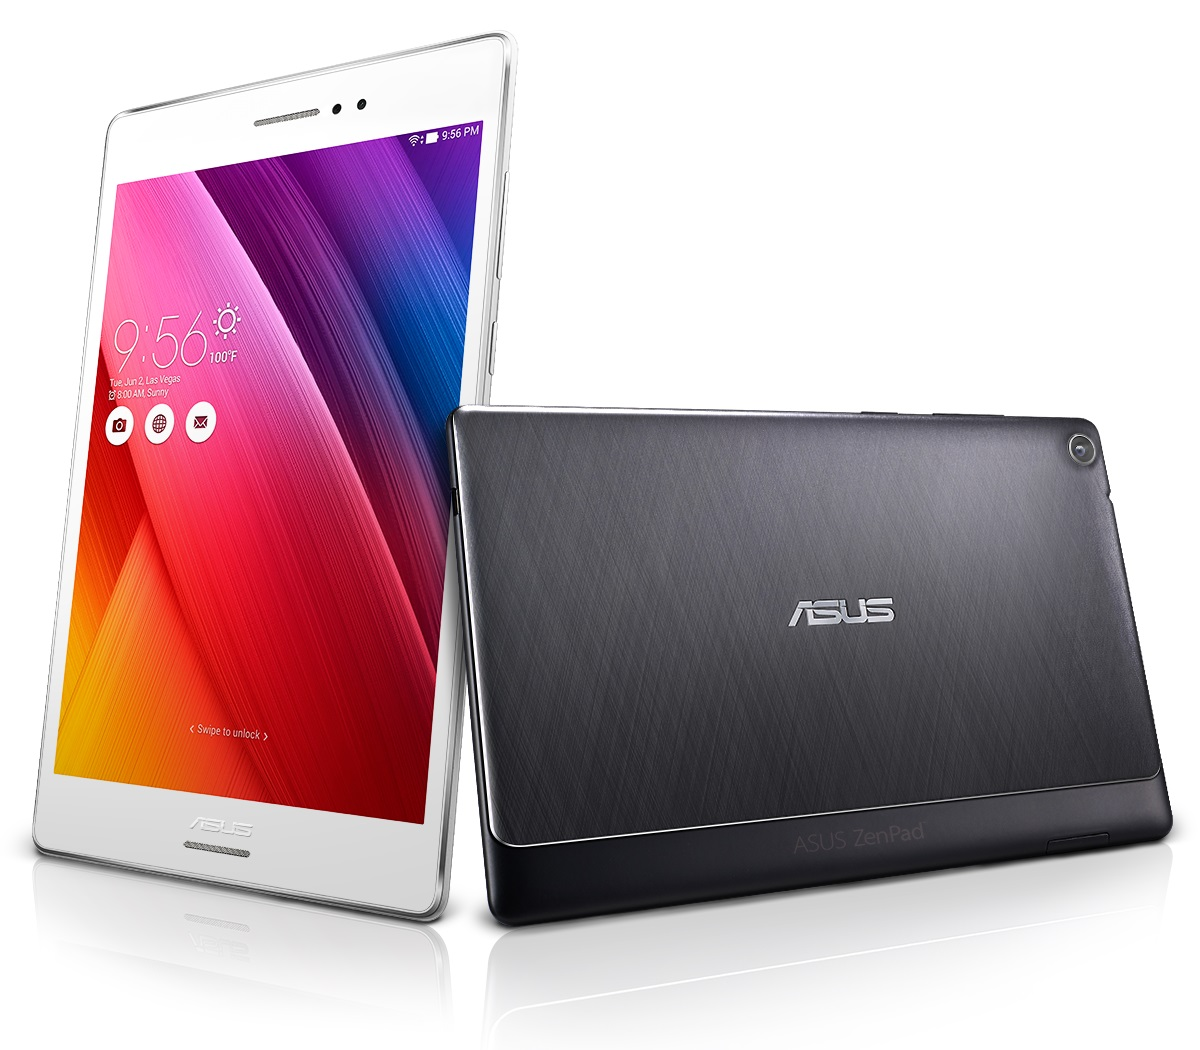 Asus ZenPad S 8.0 (Z580CA / C) Top-End Tablet Unveiled